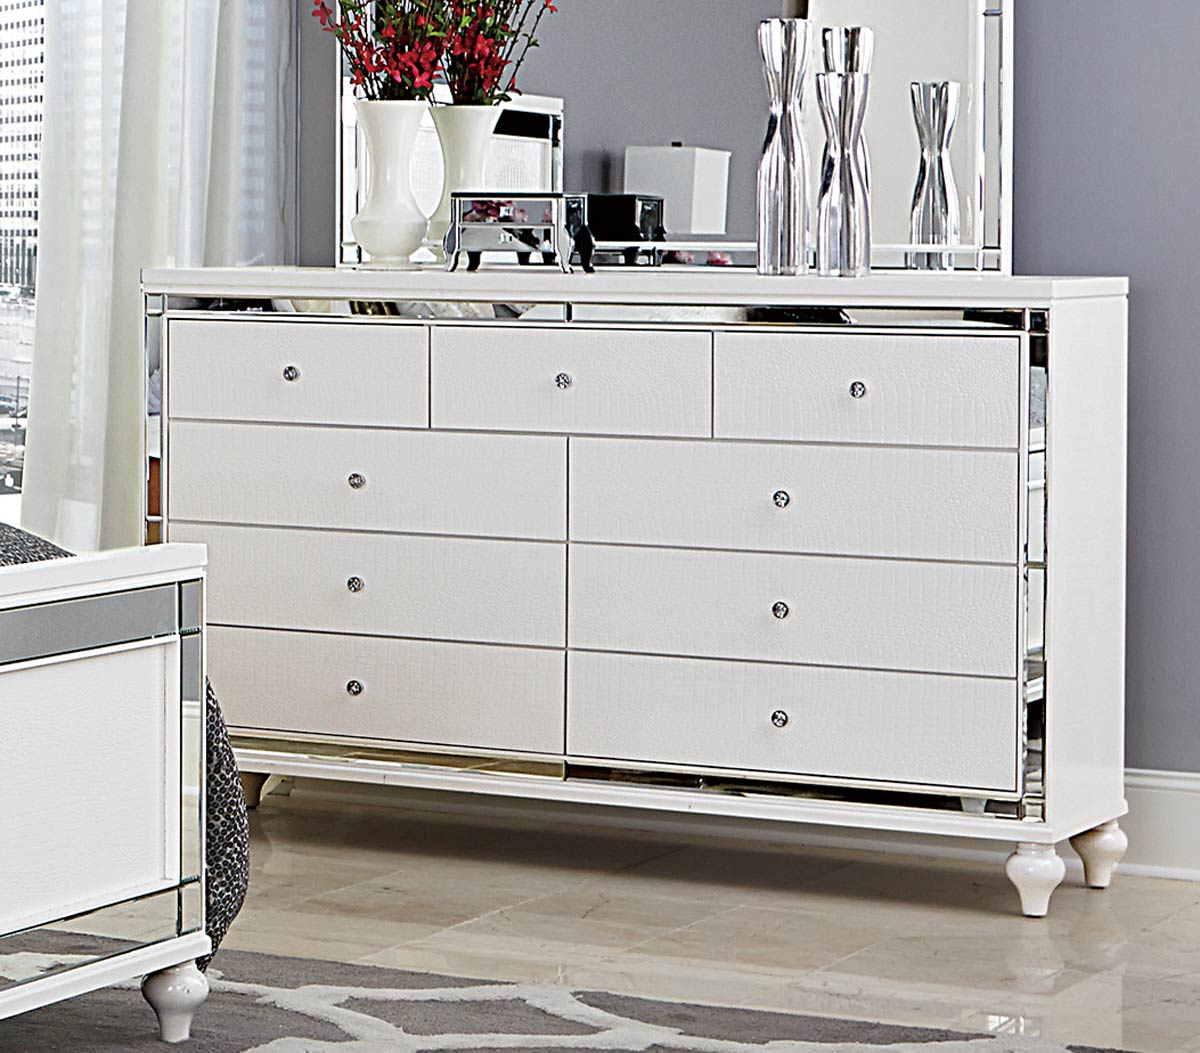 Homelegance Alonza Dresser - White